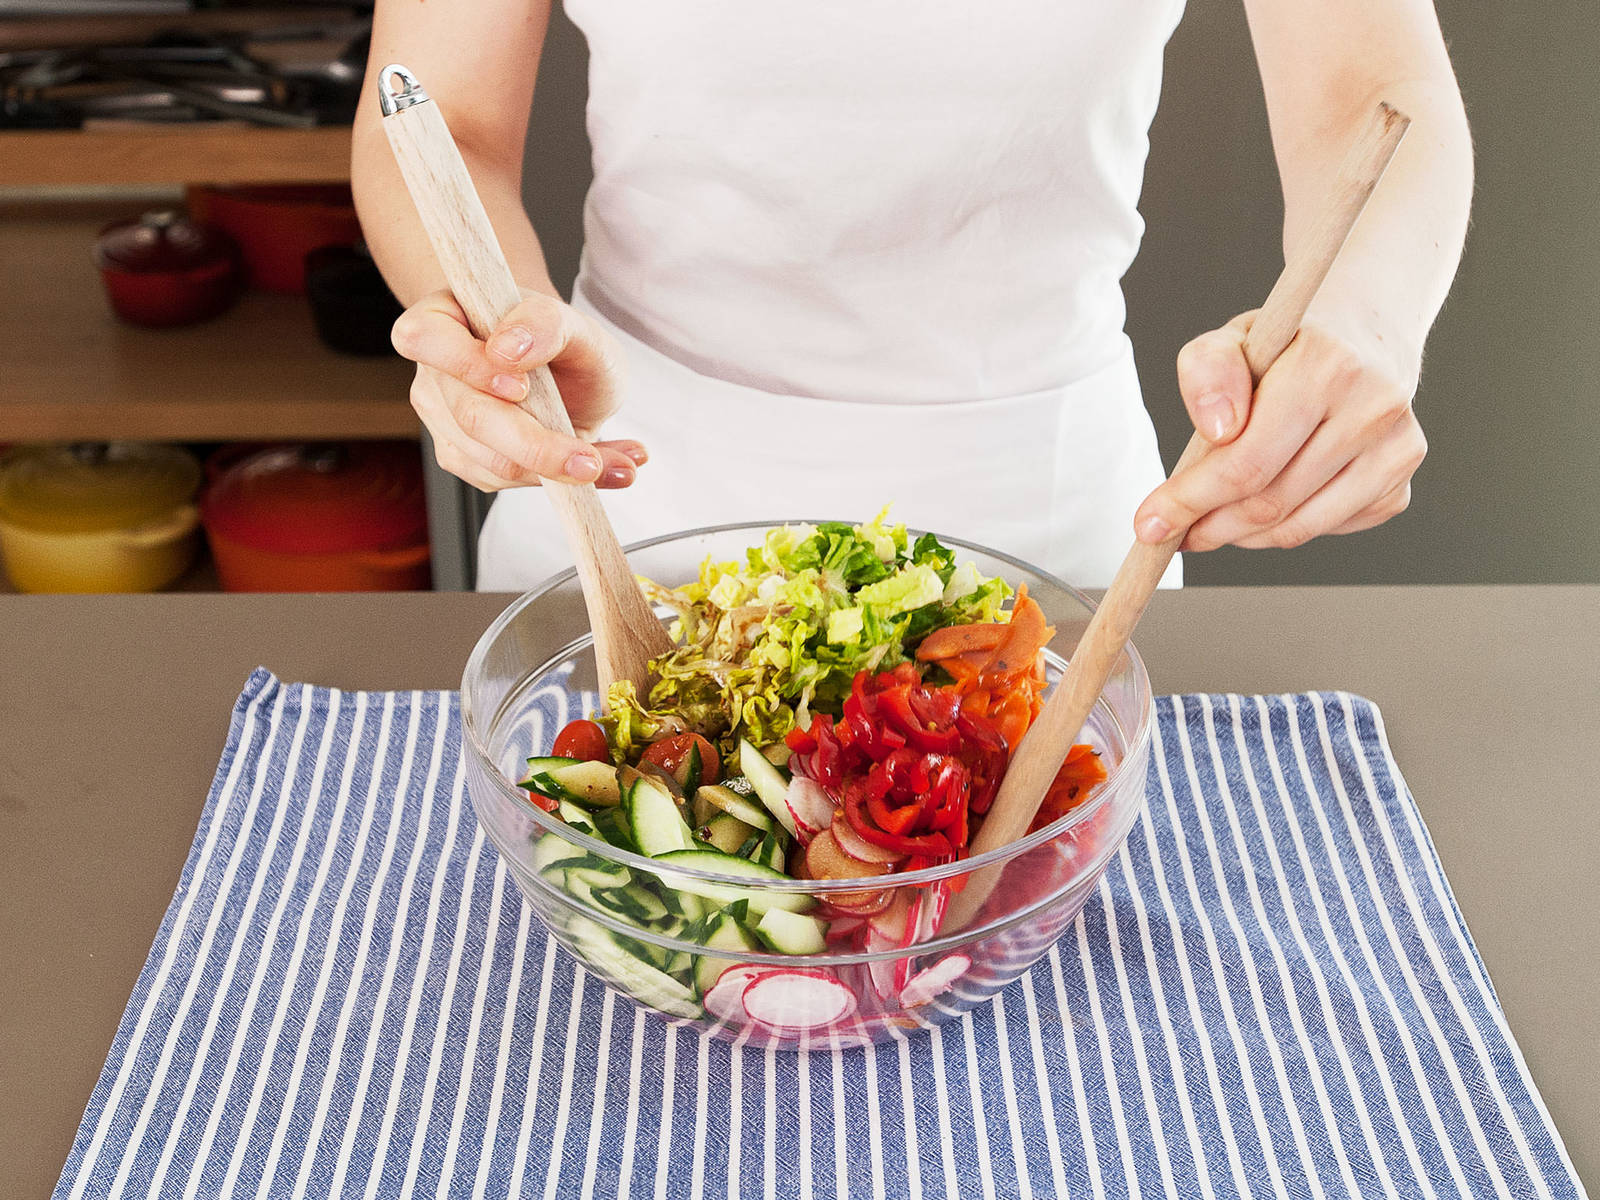 Pour dressing over the salad, a small amount at a time, and toss until well combined. Enjoy!